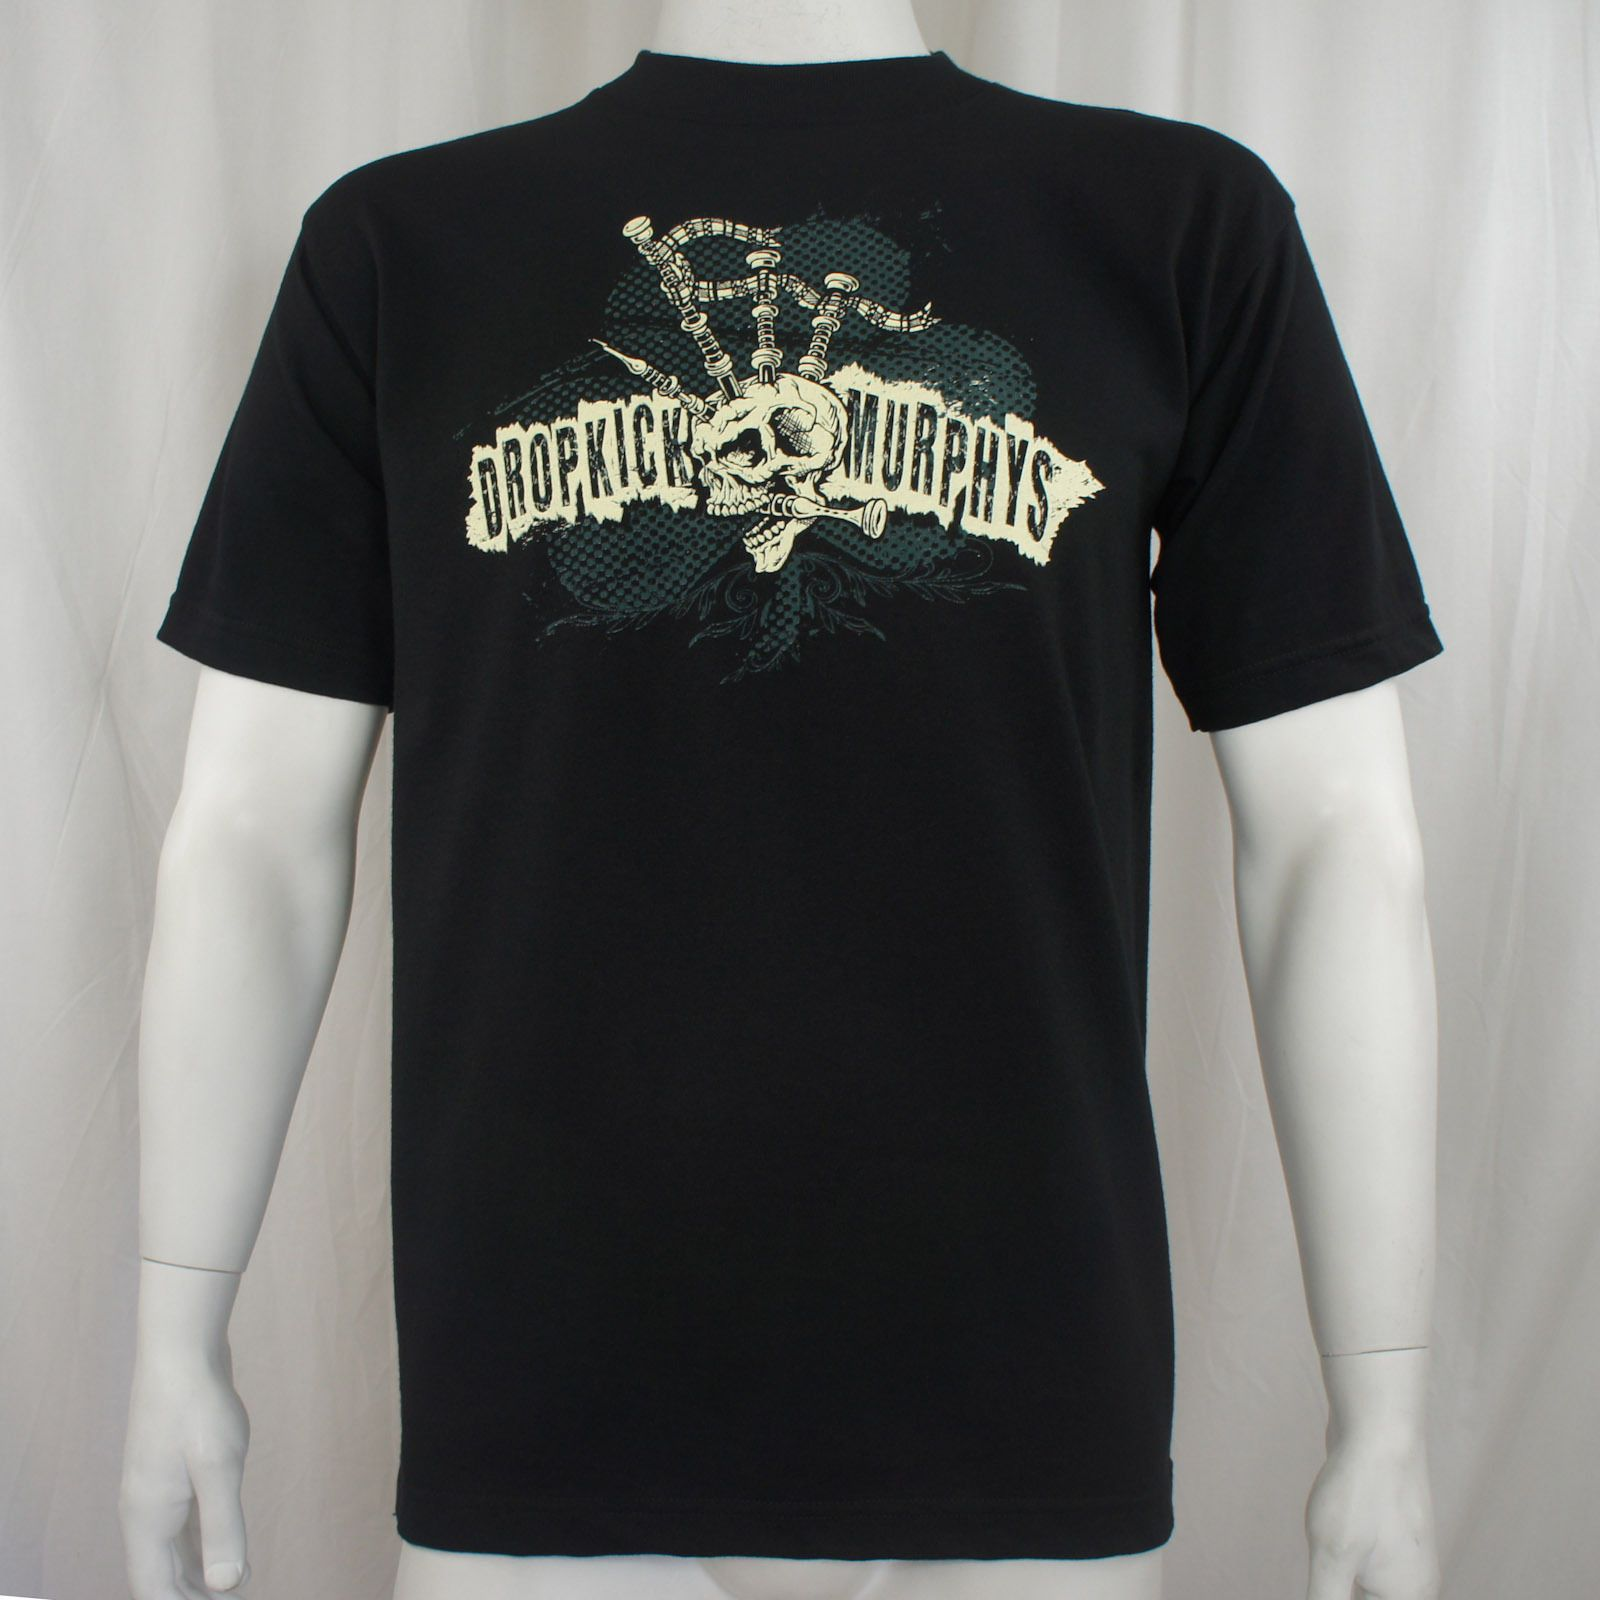 Printed Murphys Dropkick Shirt T Men Authentic Skeleton Bagpipe rwSg8rqH